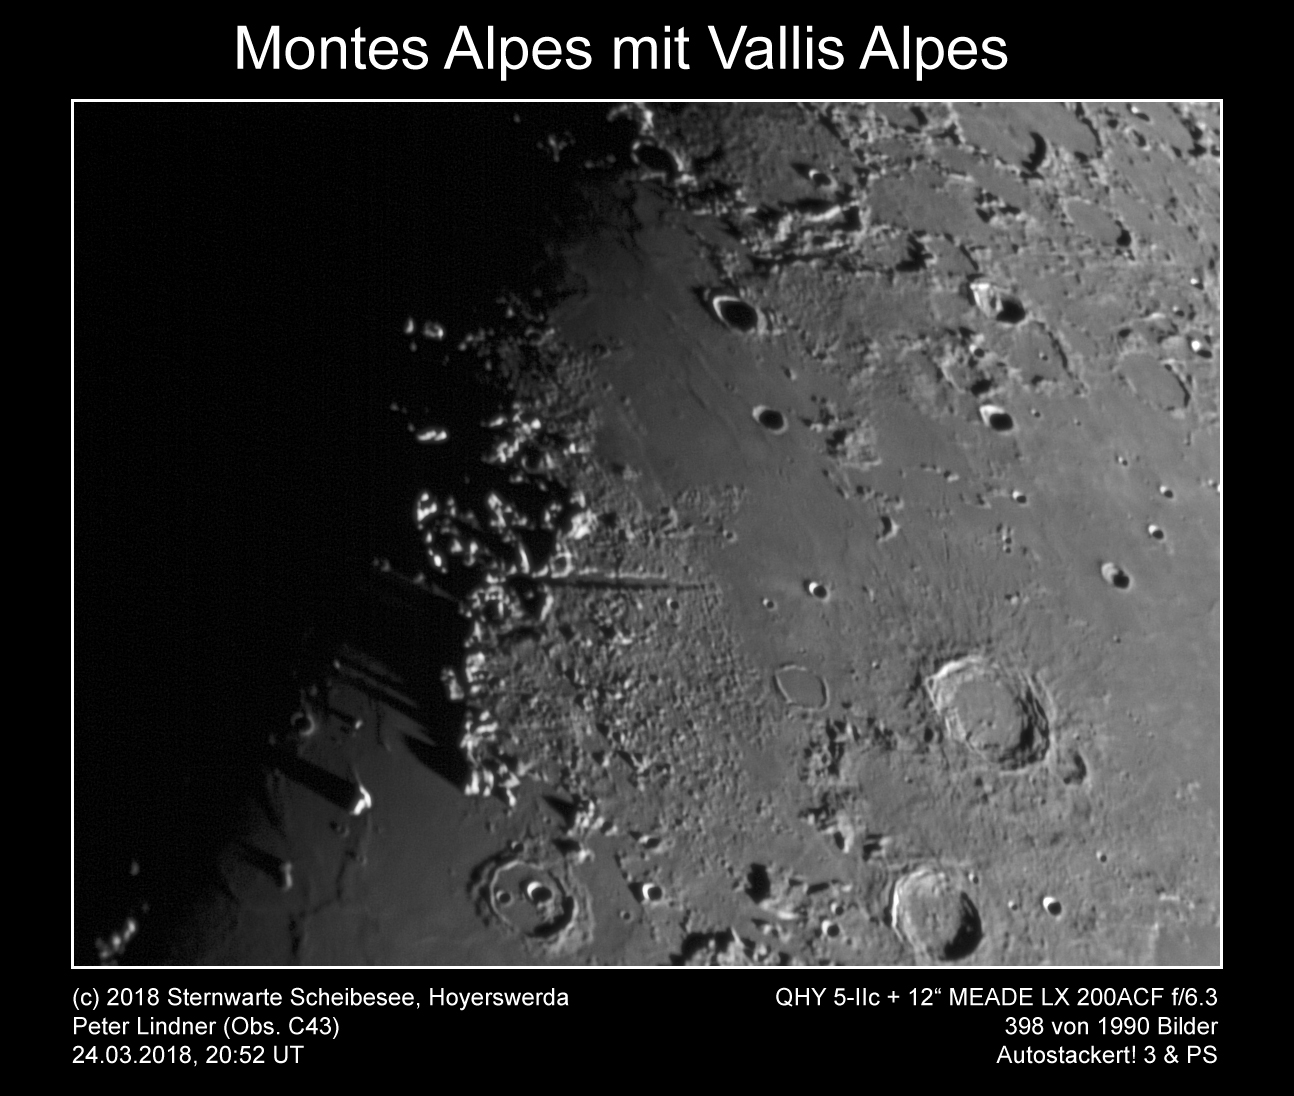 Montes Alpes mit Vallis Alpes am 24.03.2018 (Bild: Peter Lindner)